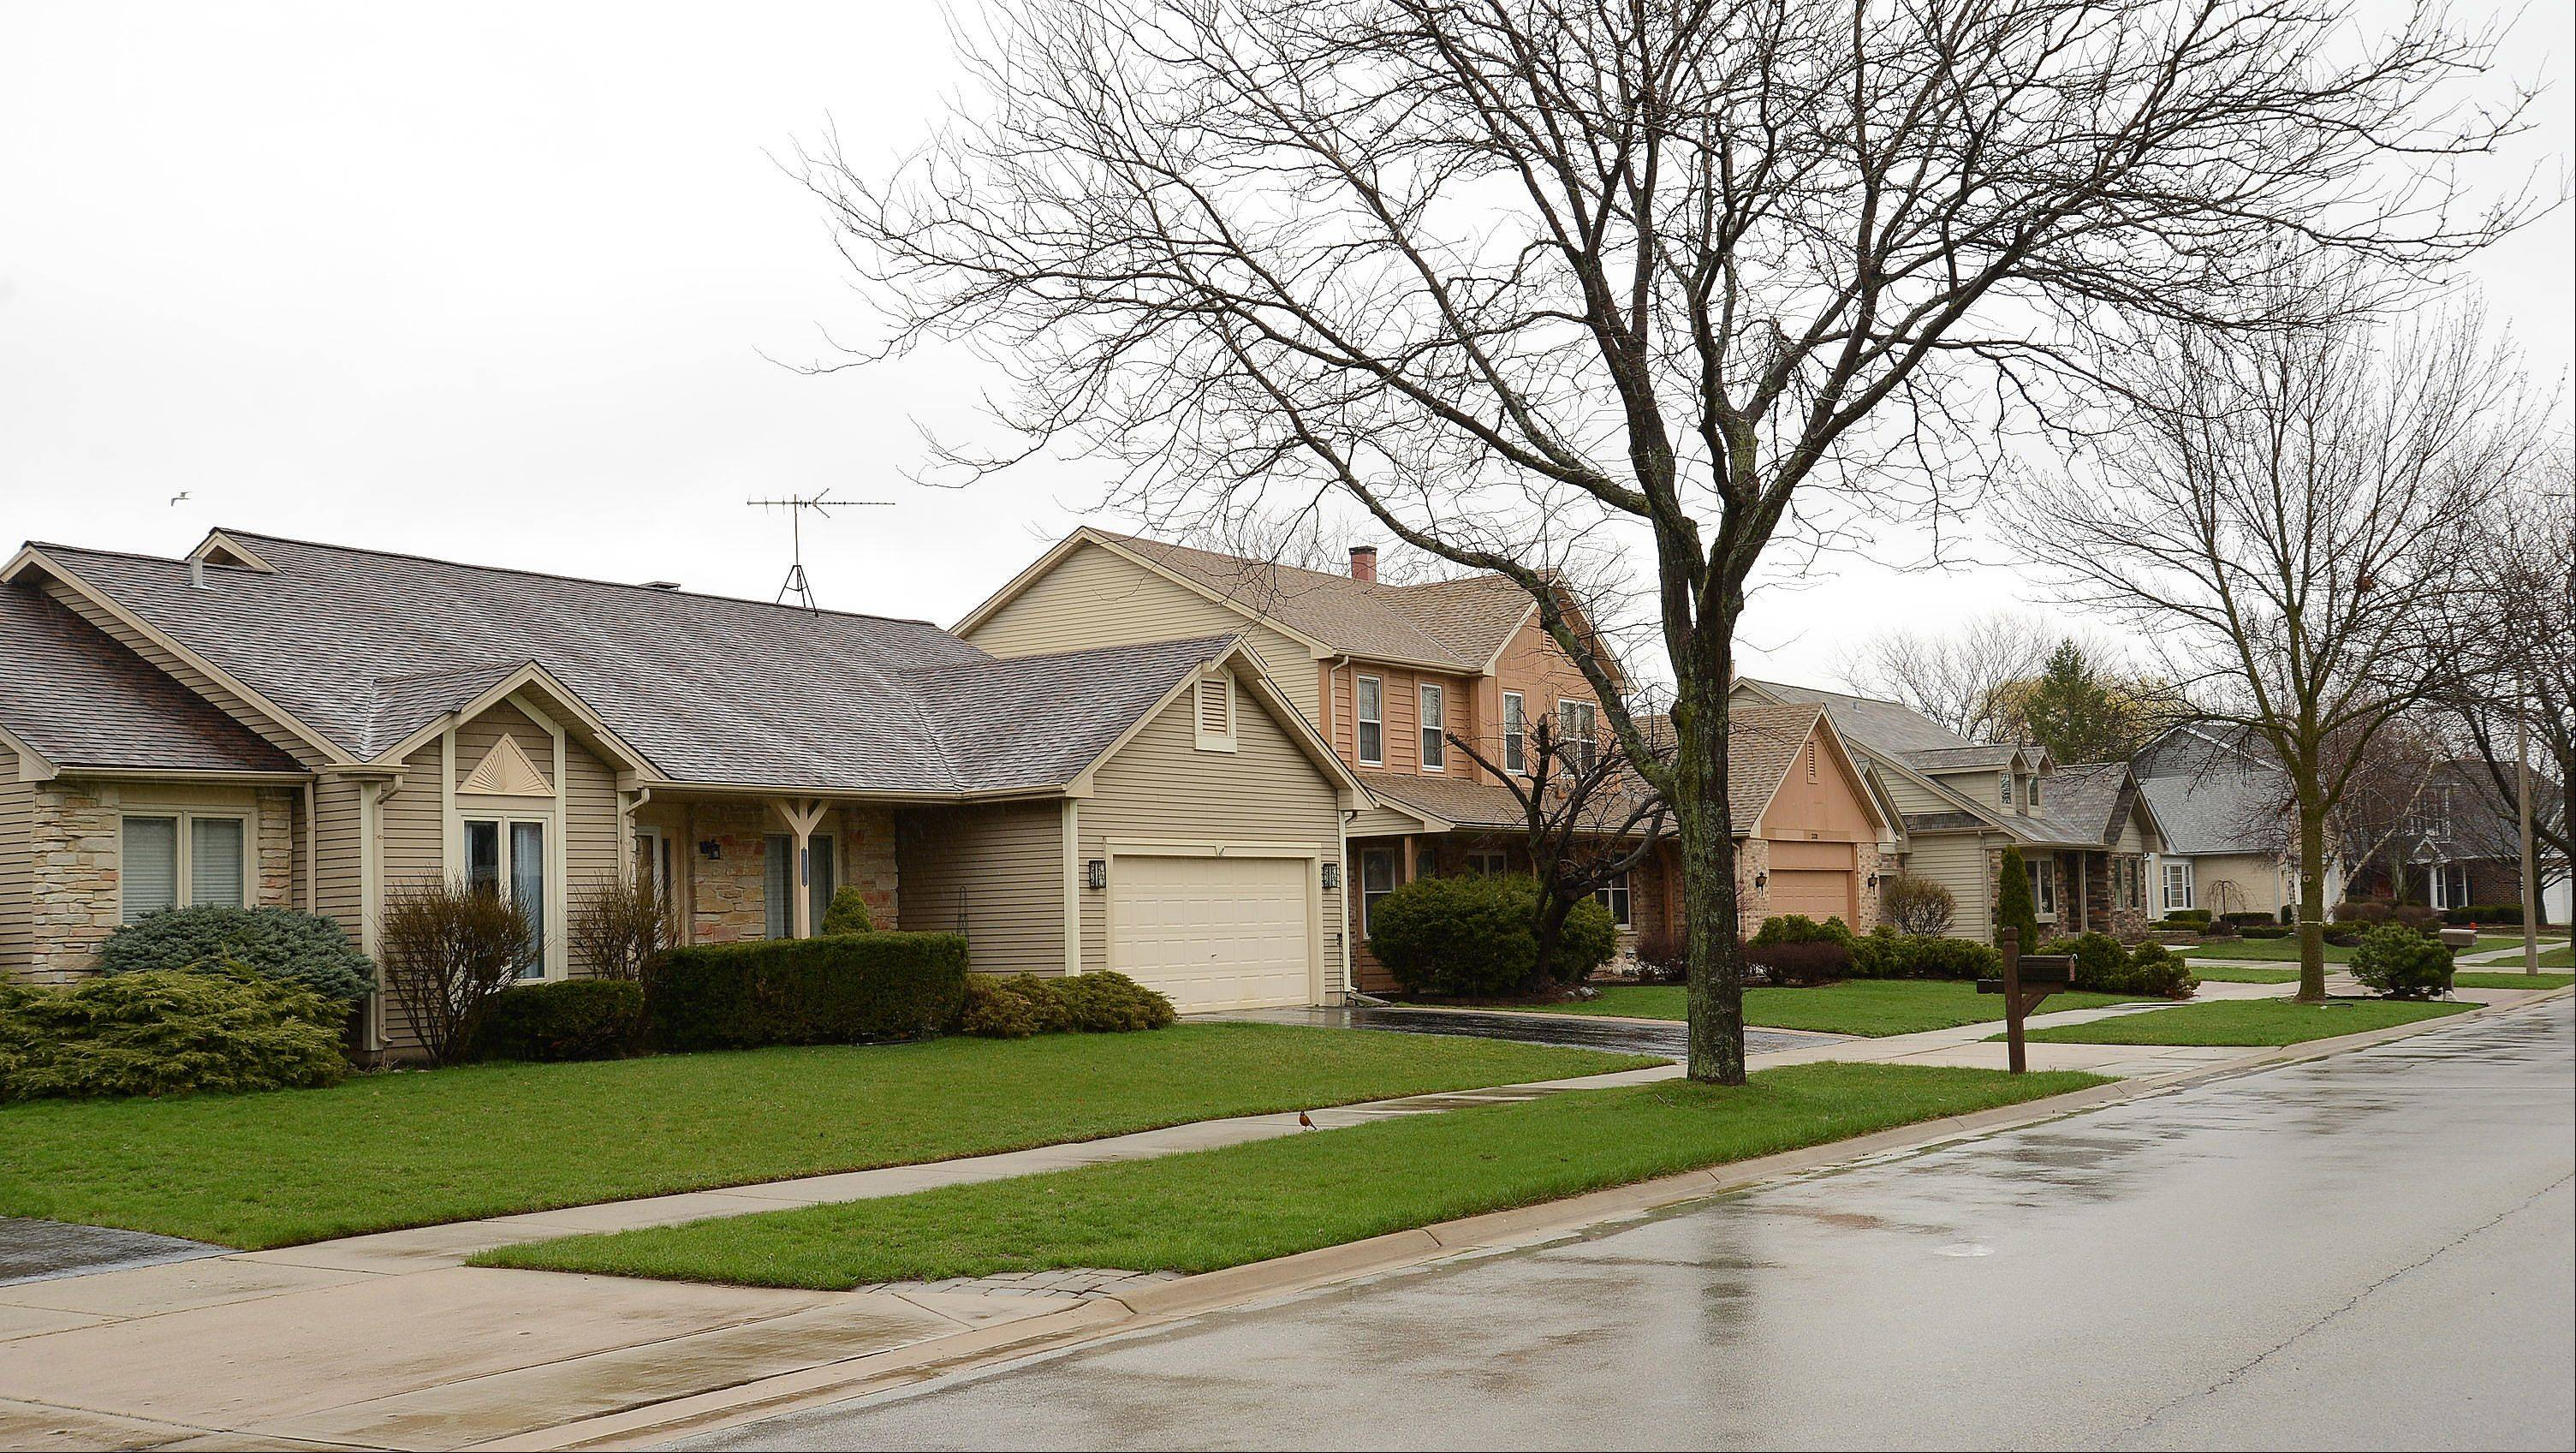 Theses single-family homes along Walden Lane are typical of those found in the Lake Arlington neighborhood.